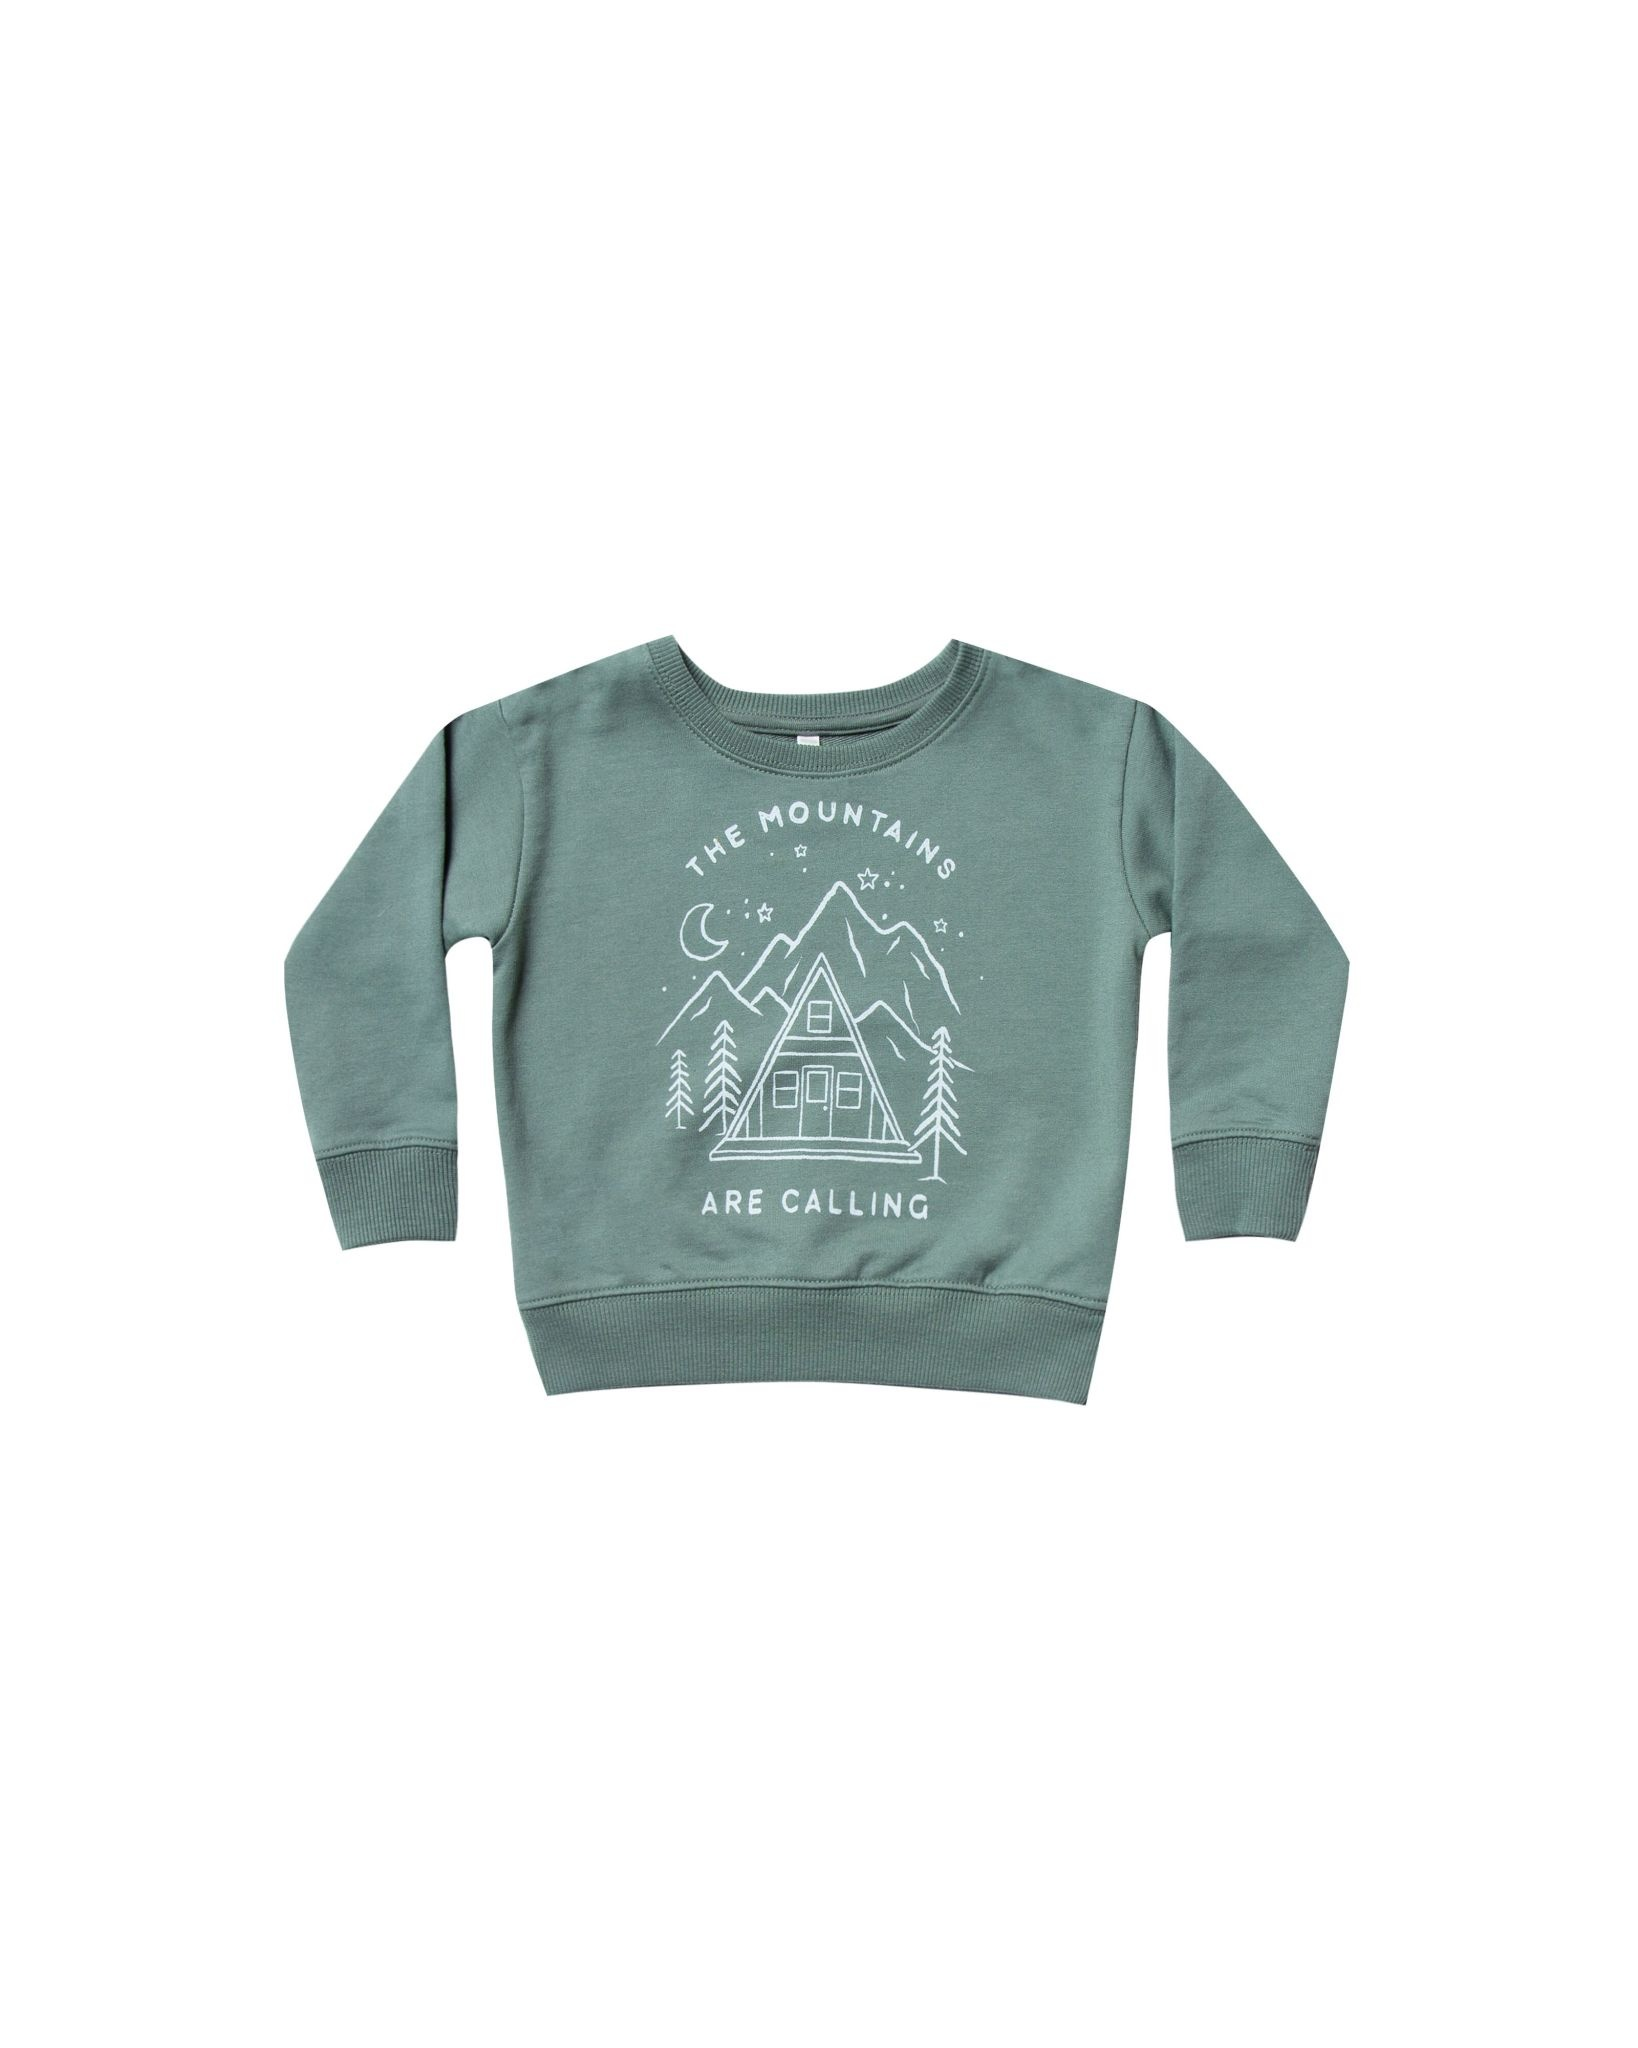 RYLEE AND CRU Mountains Are Calling Baby Sweatshirt